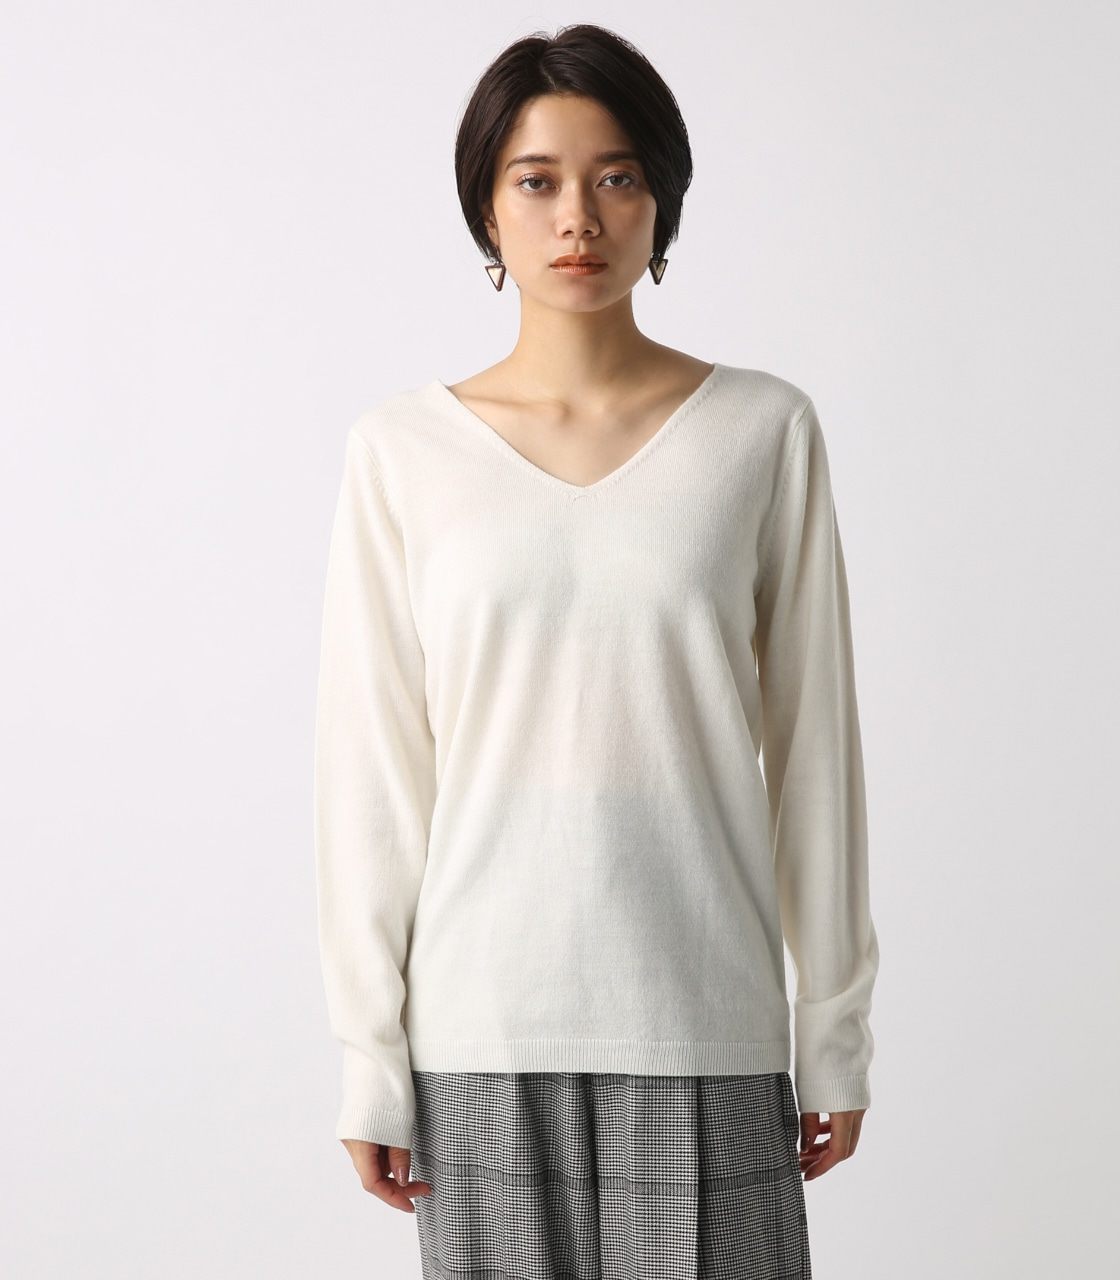 【AZUL BY MOUSSY】ウォッシャブルソフトタッチVネック長袖プルオーバー 詳細画像 O/WHT 5